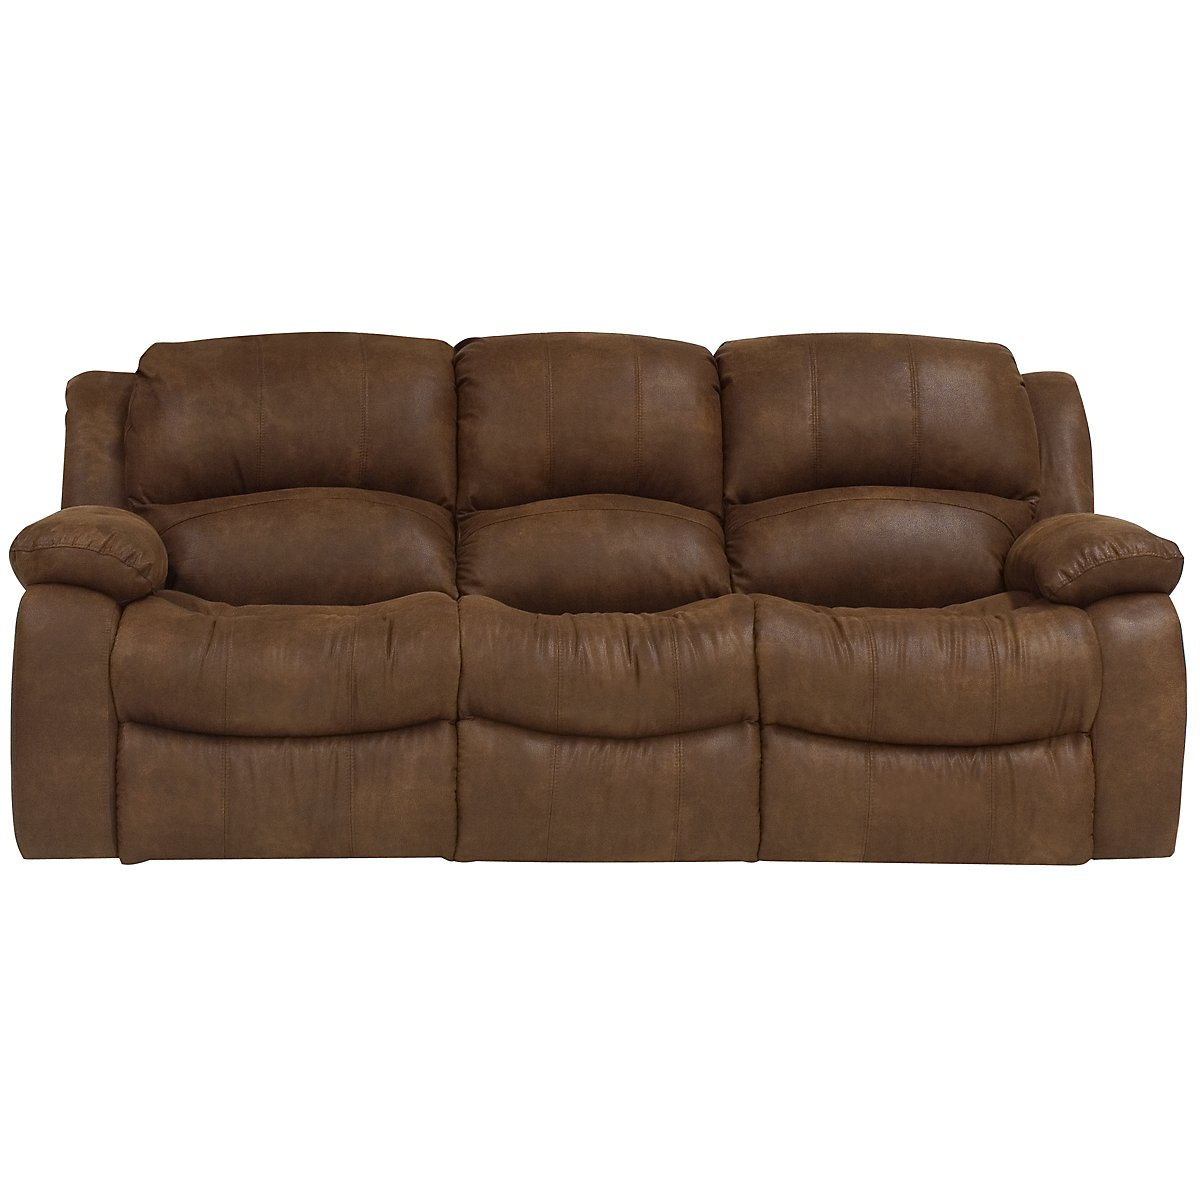 City Furniture Tyler2 Md Brown Microfiber Reclining Sofa